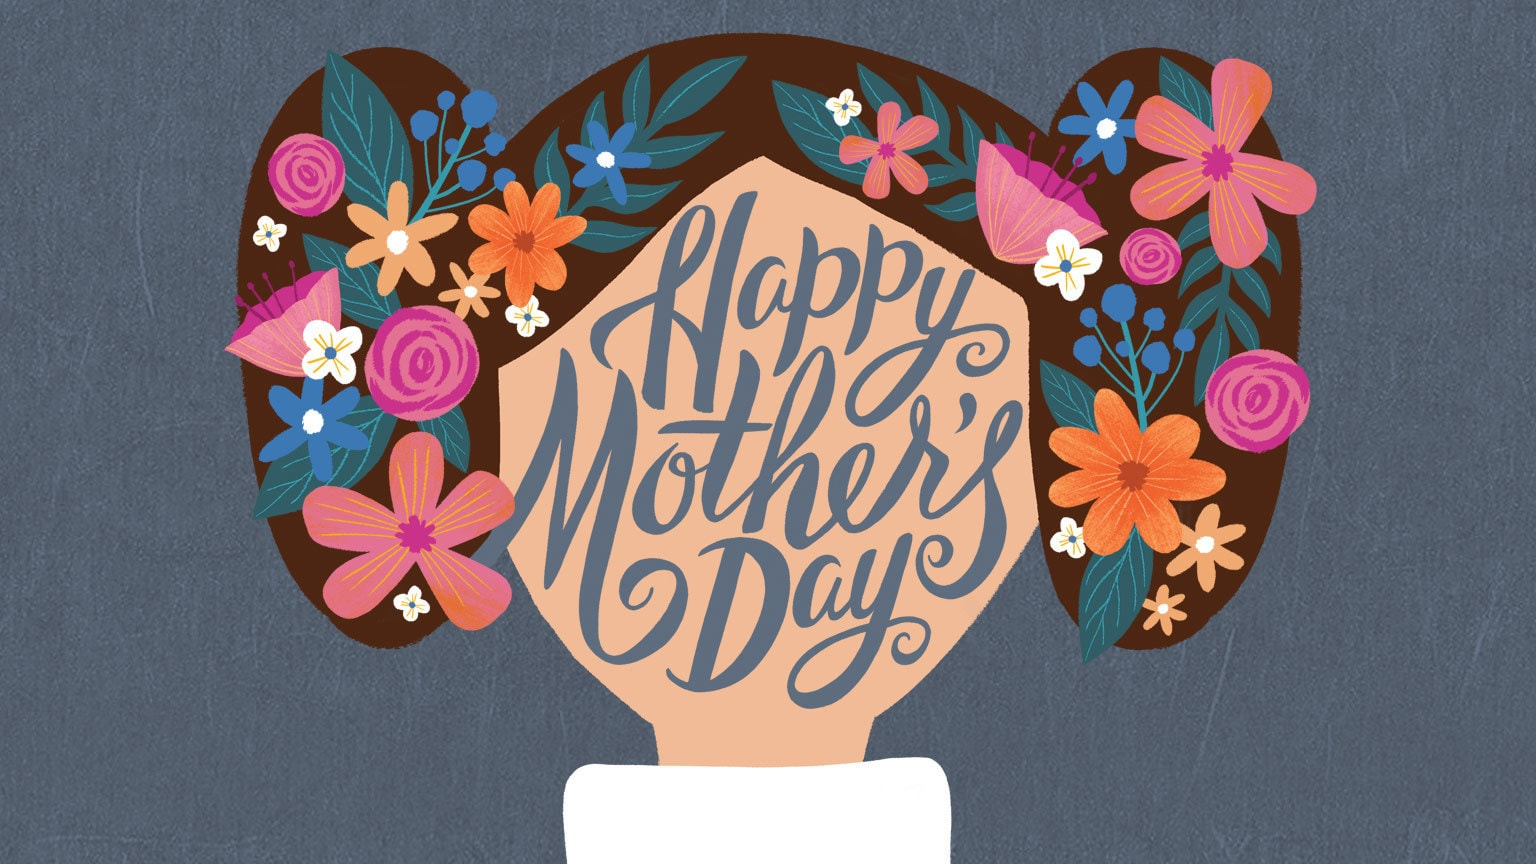 Happy Mother's Day from StarWars.com